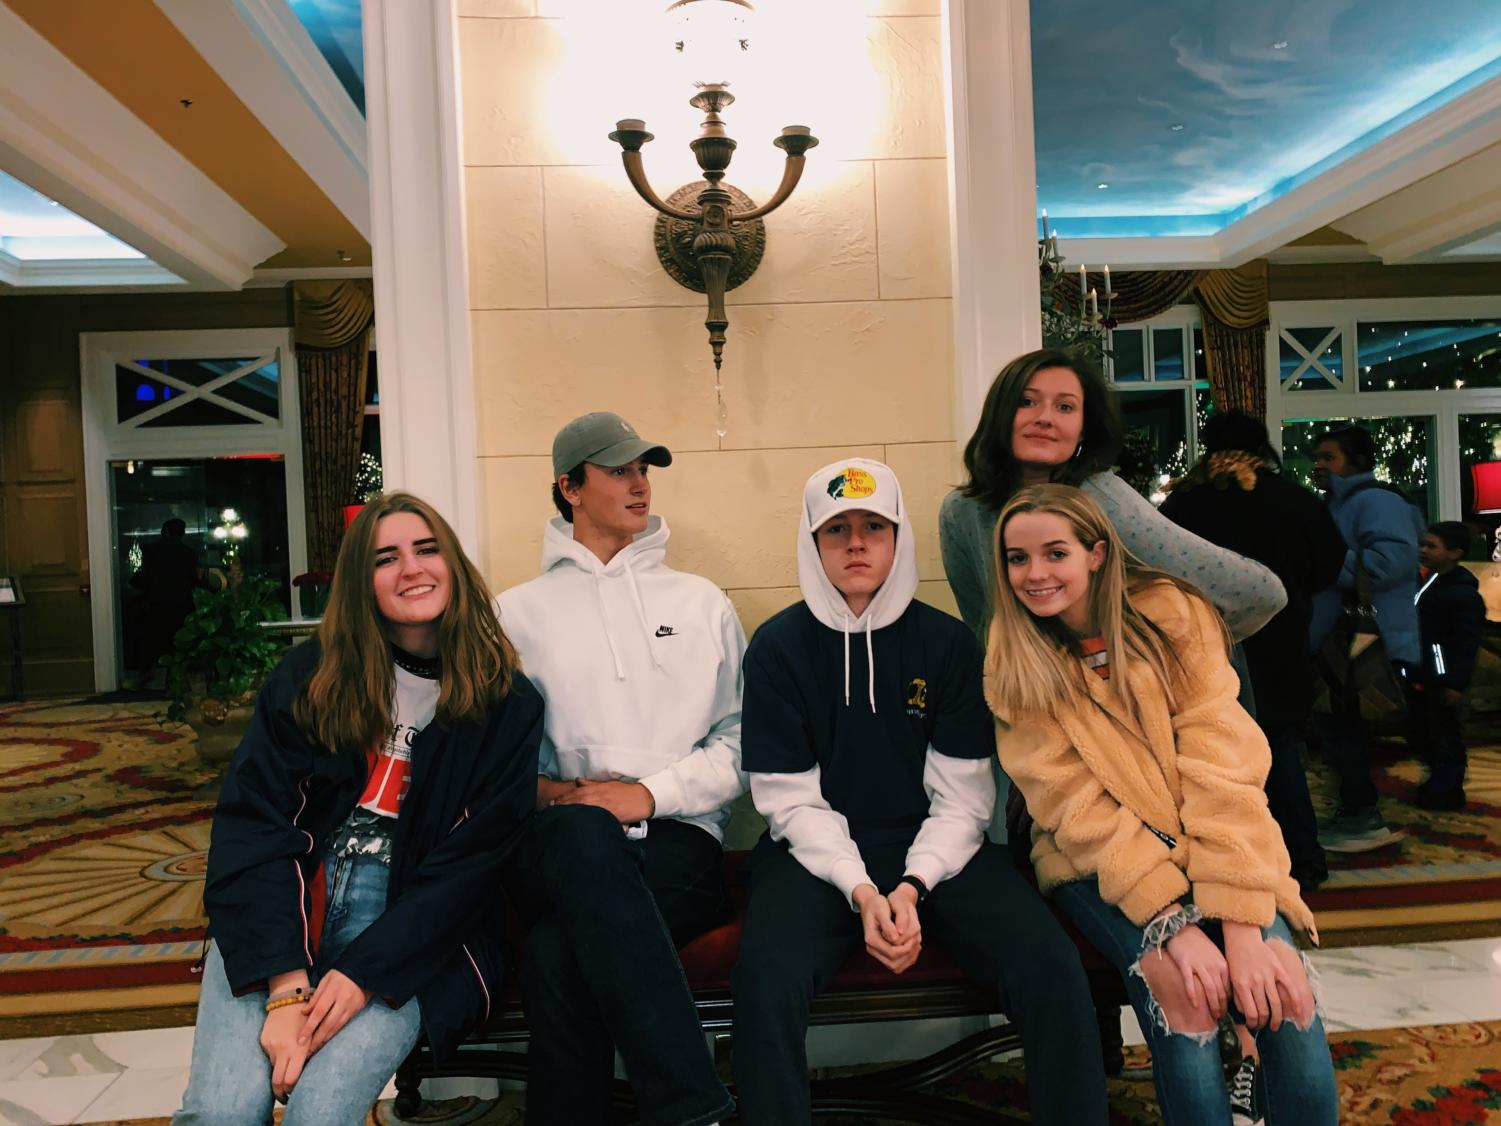 Seniors Callissa Steel, Samuel Jones, Jakob Grebe, Molly Carroll and Acacia Ryska pose at the Broadmoor after looking at the Christmas decorations.